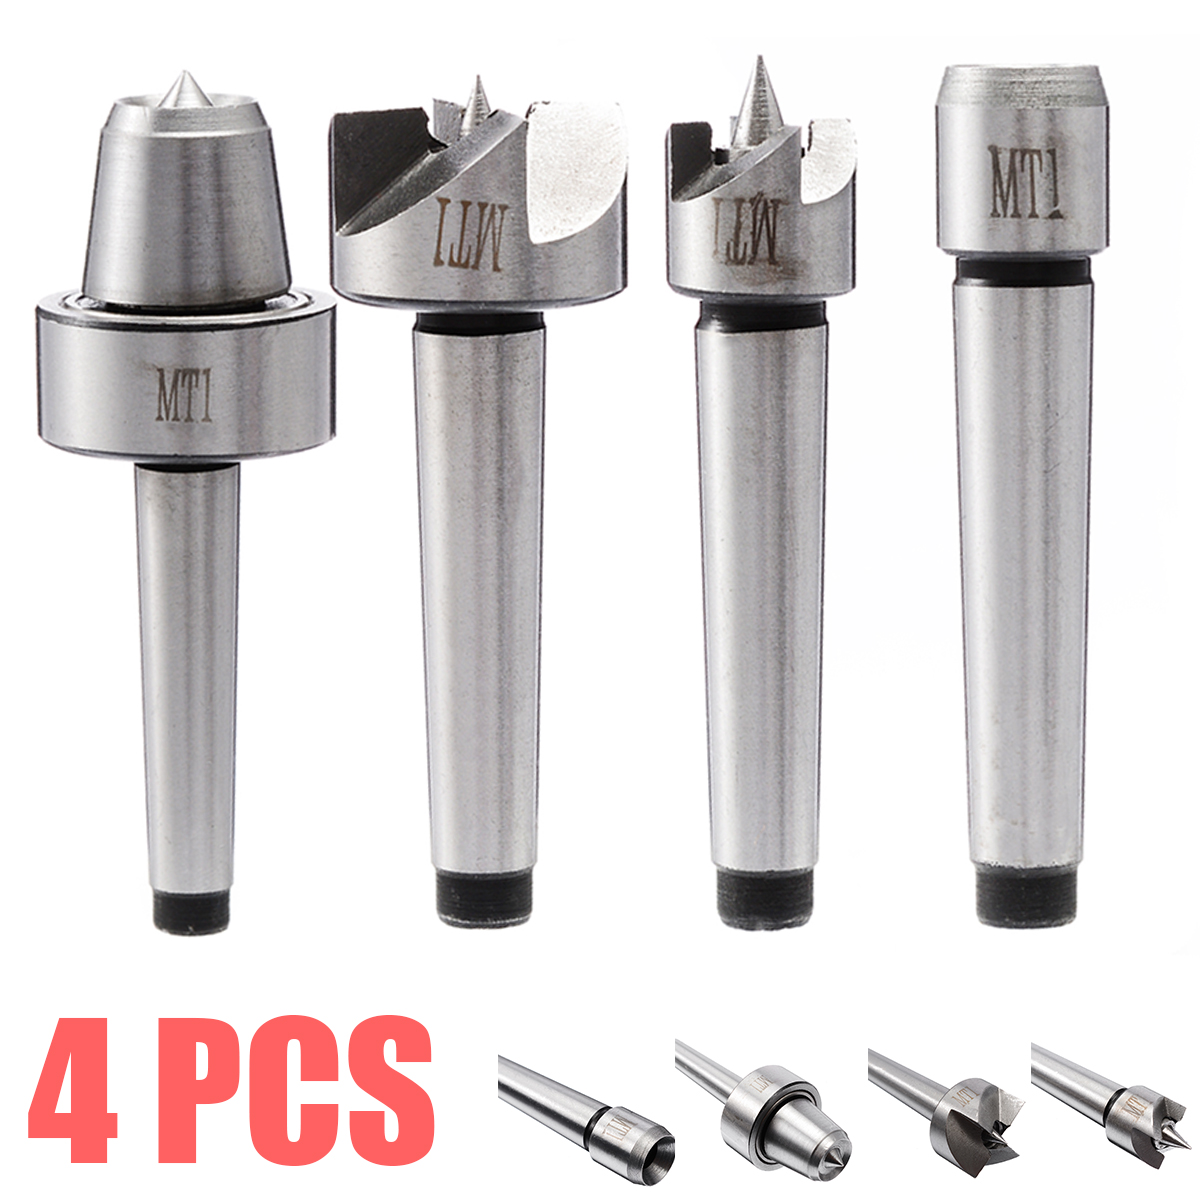 4pcs MT1 Wood Lathe Live Center And Drive Spur Cup MT1 Arbor Wood And Metalworking Lathe For Power Tool